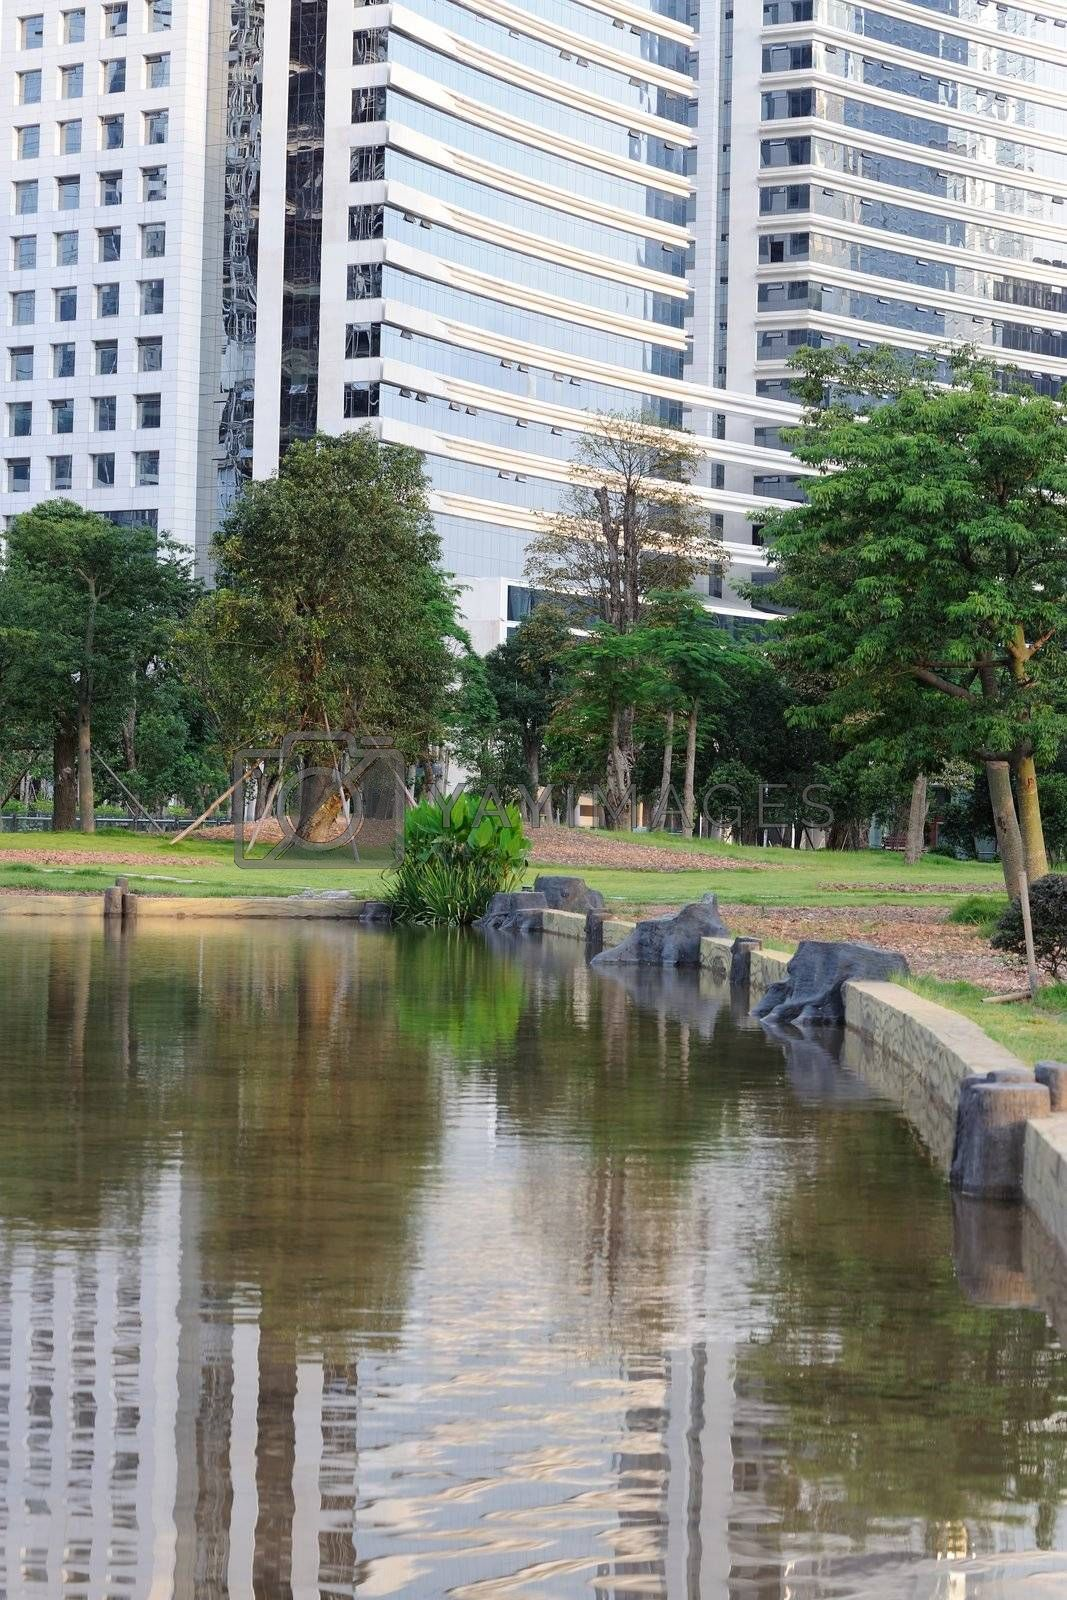 Urban garden with pond, tree and building background